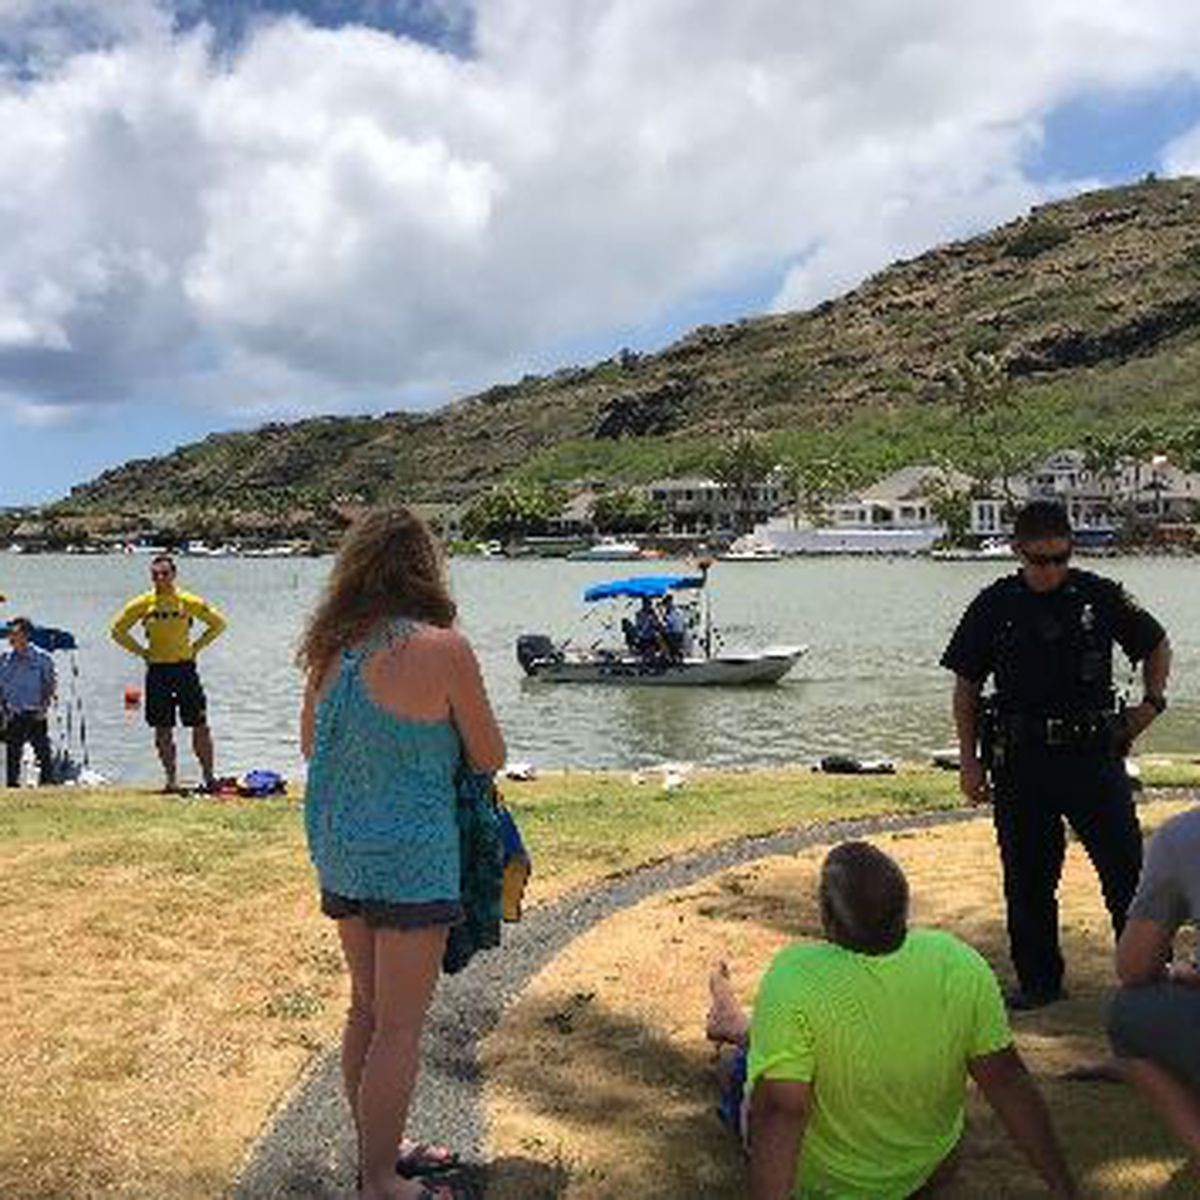 Woman who died after car ended up in Hawaii Kai lagoon identified